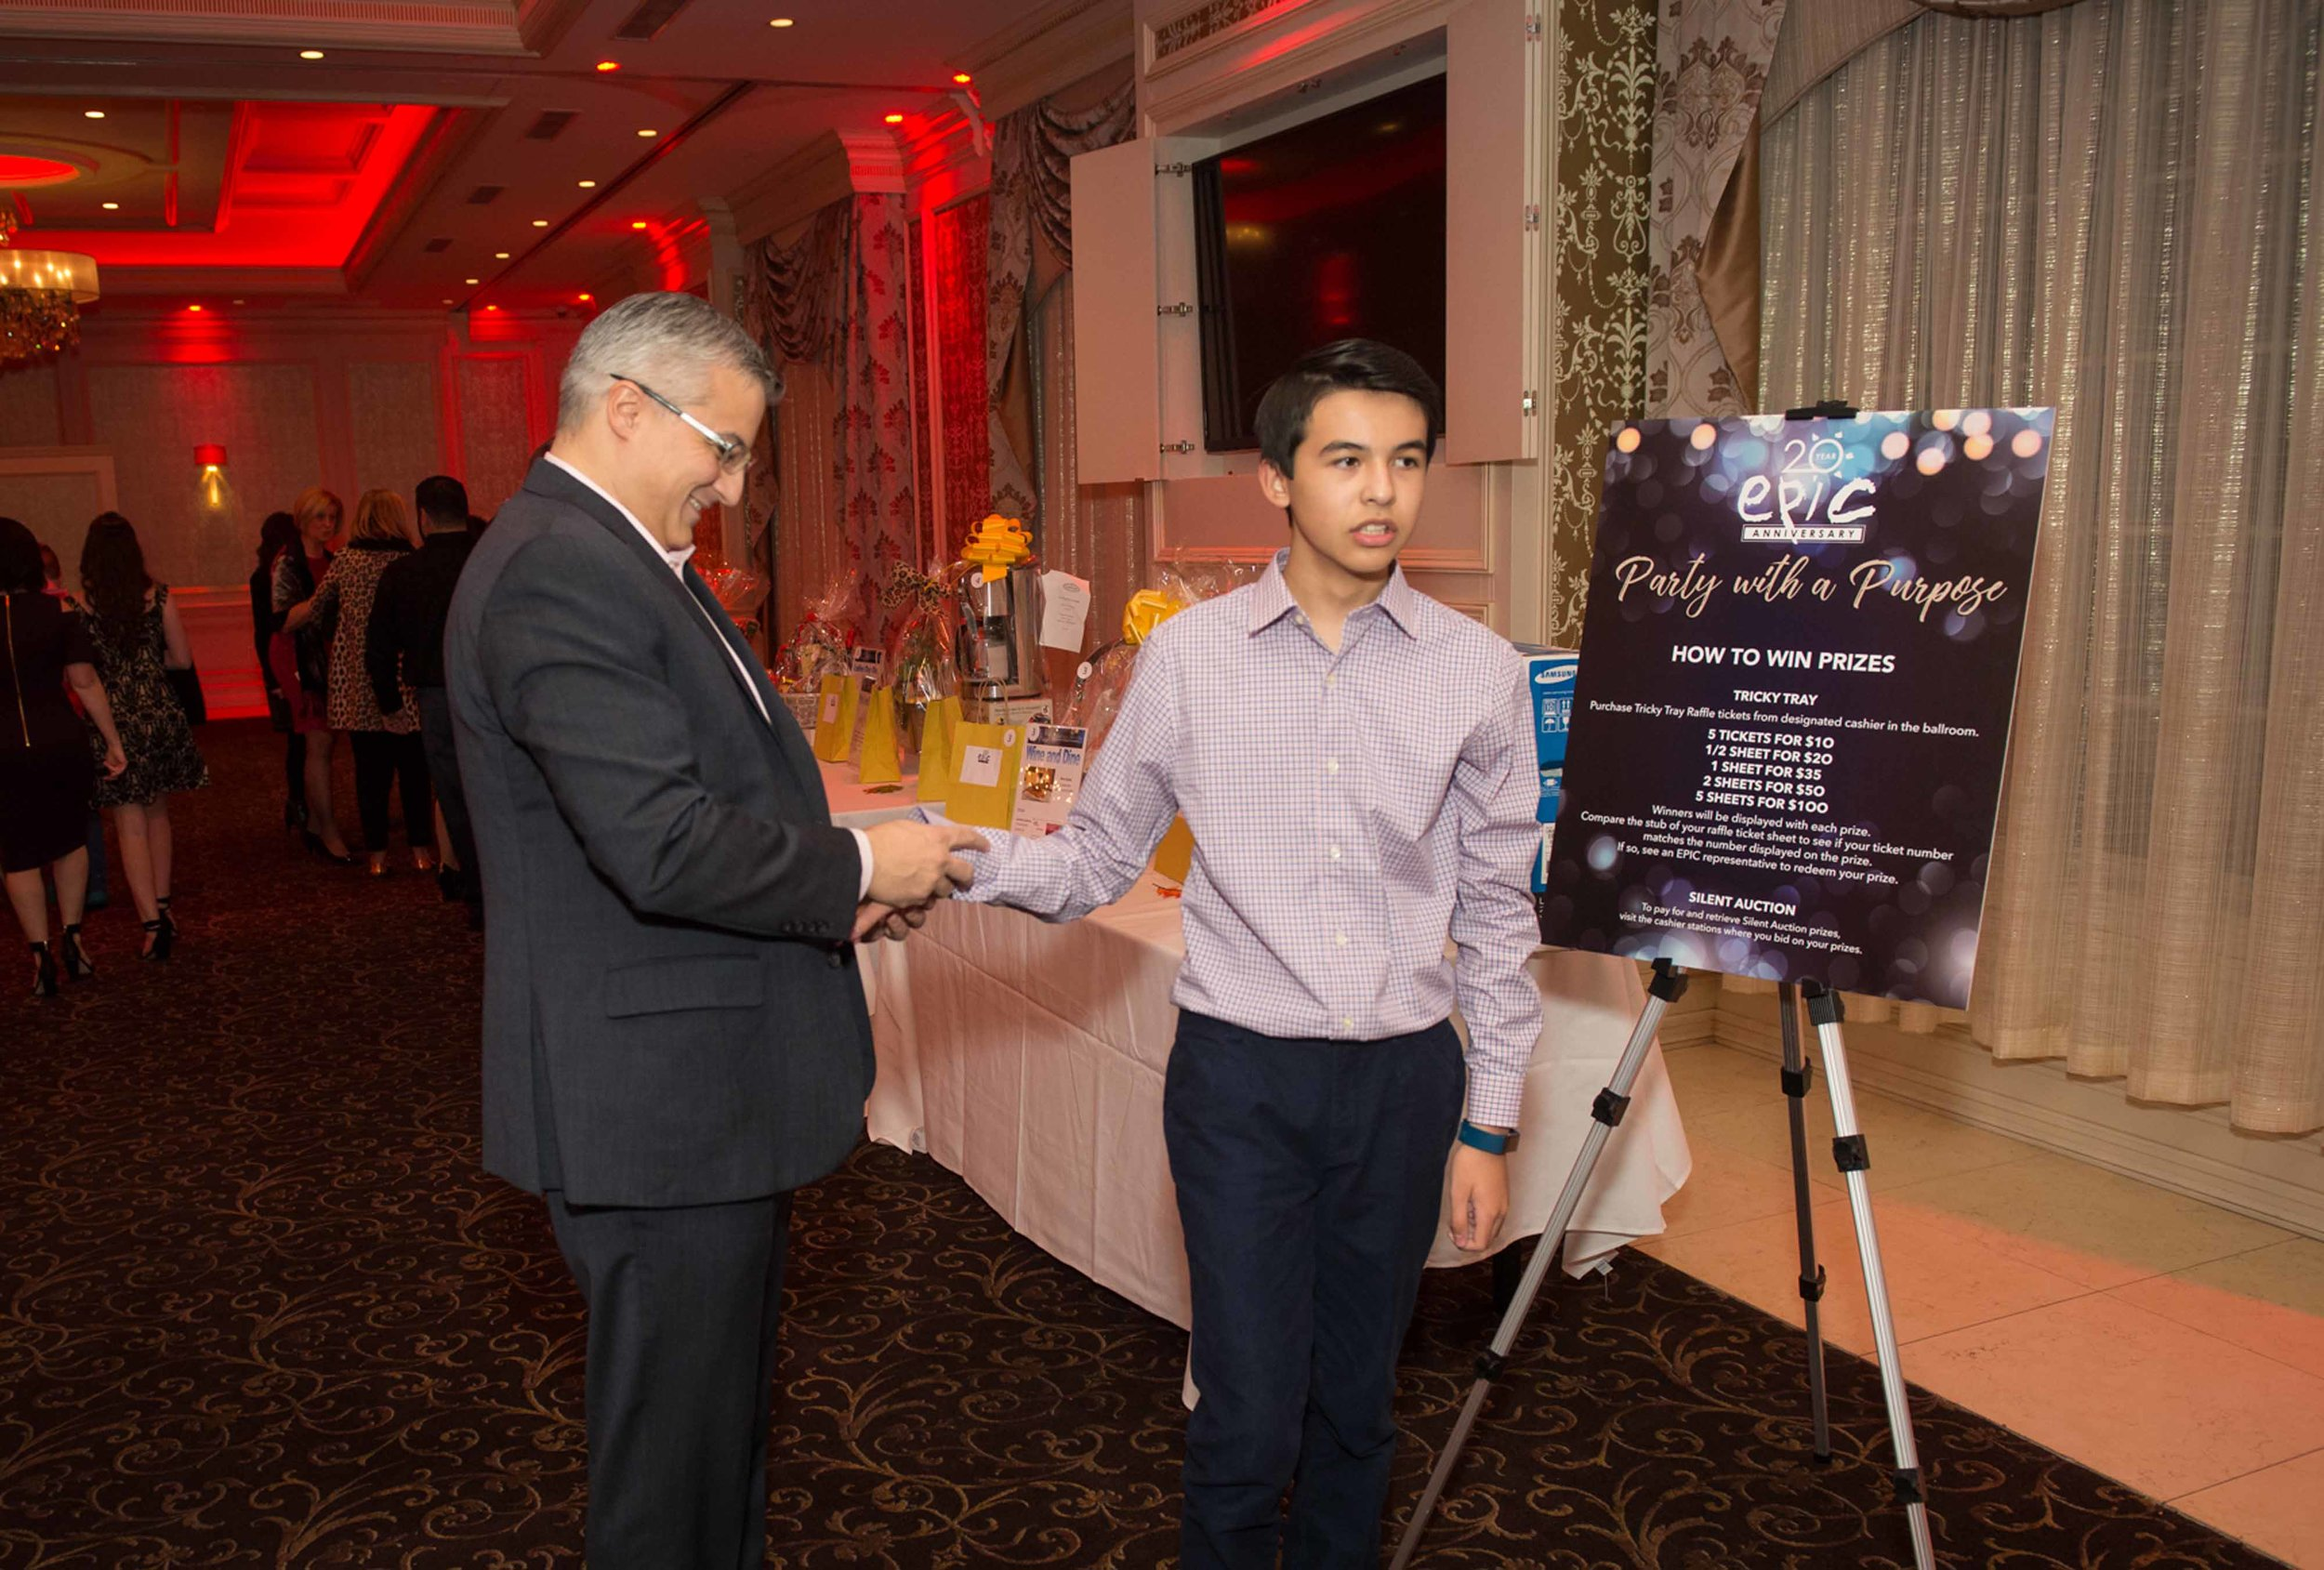 2017-11-10 The EPIC School - Party with a Purpose - Biagios on the Terrace - Paramus NJ-31.jpg